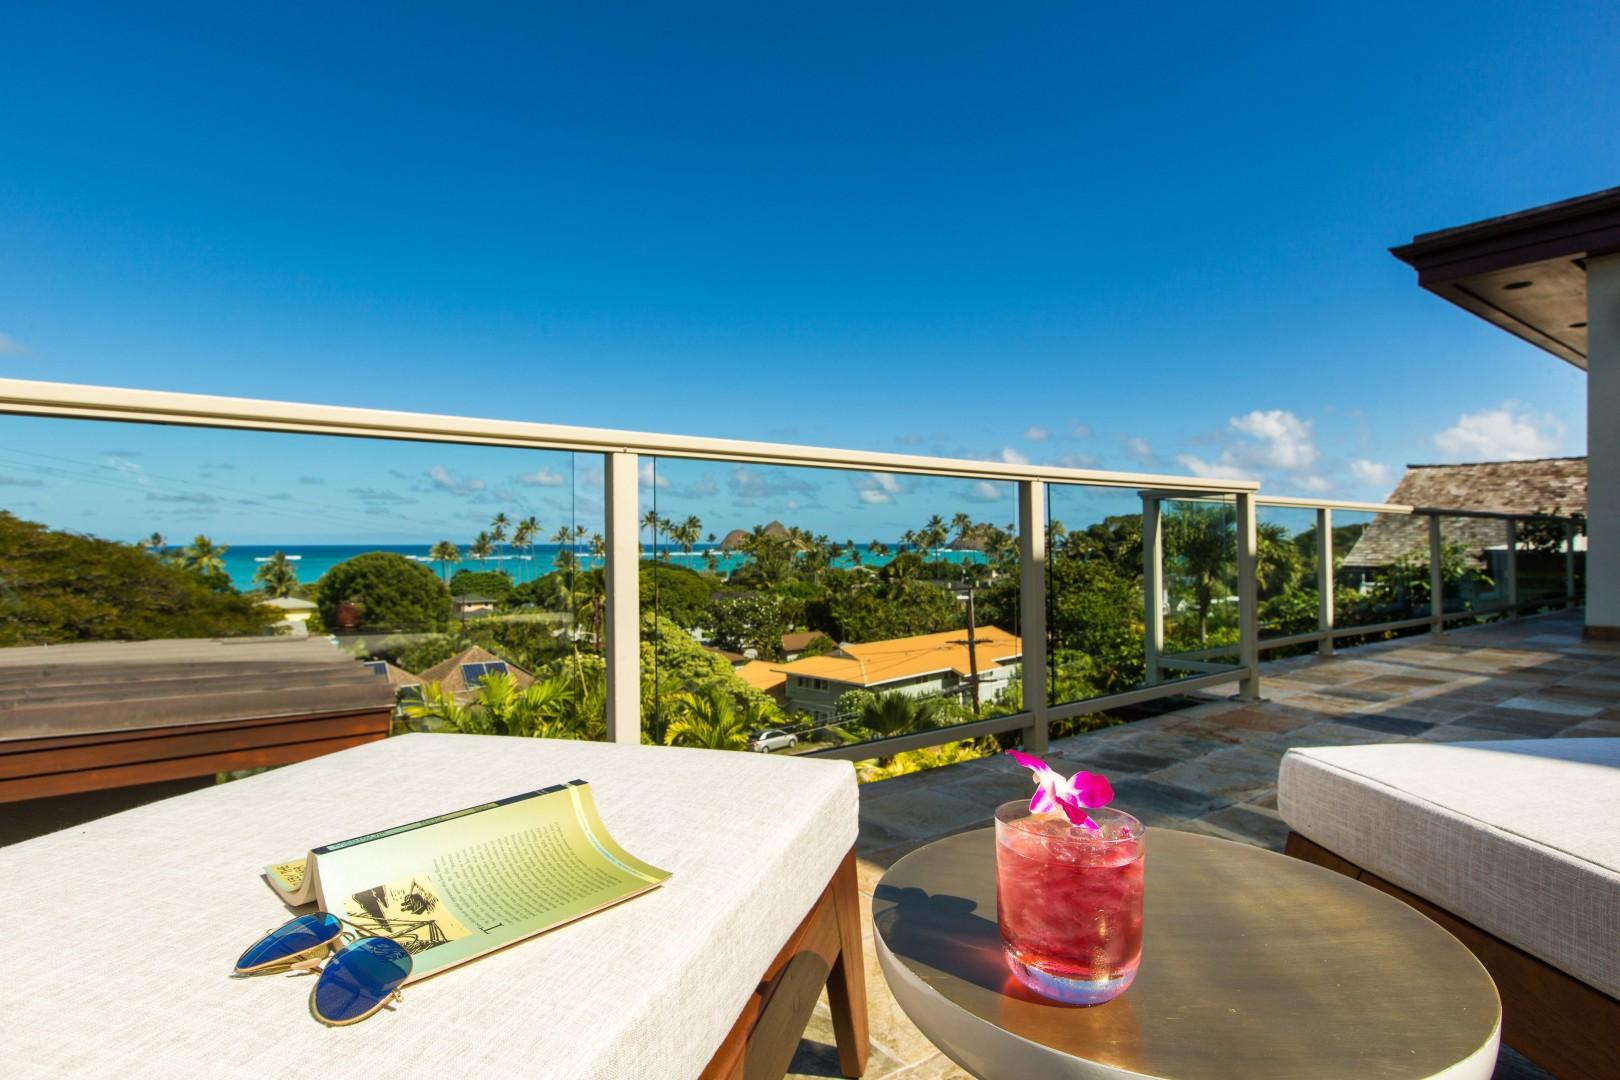 Relax on the lanai with a refreshing drink and a book.